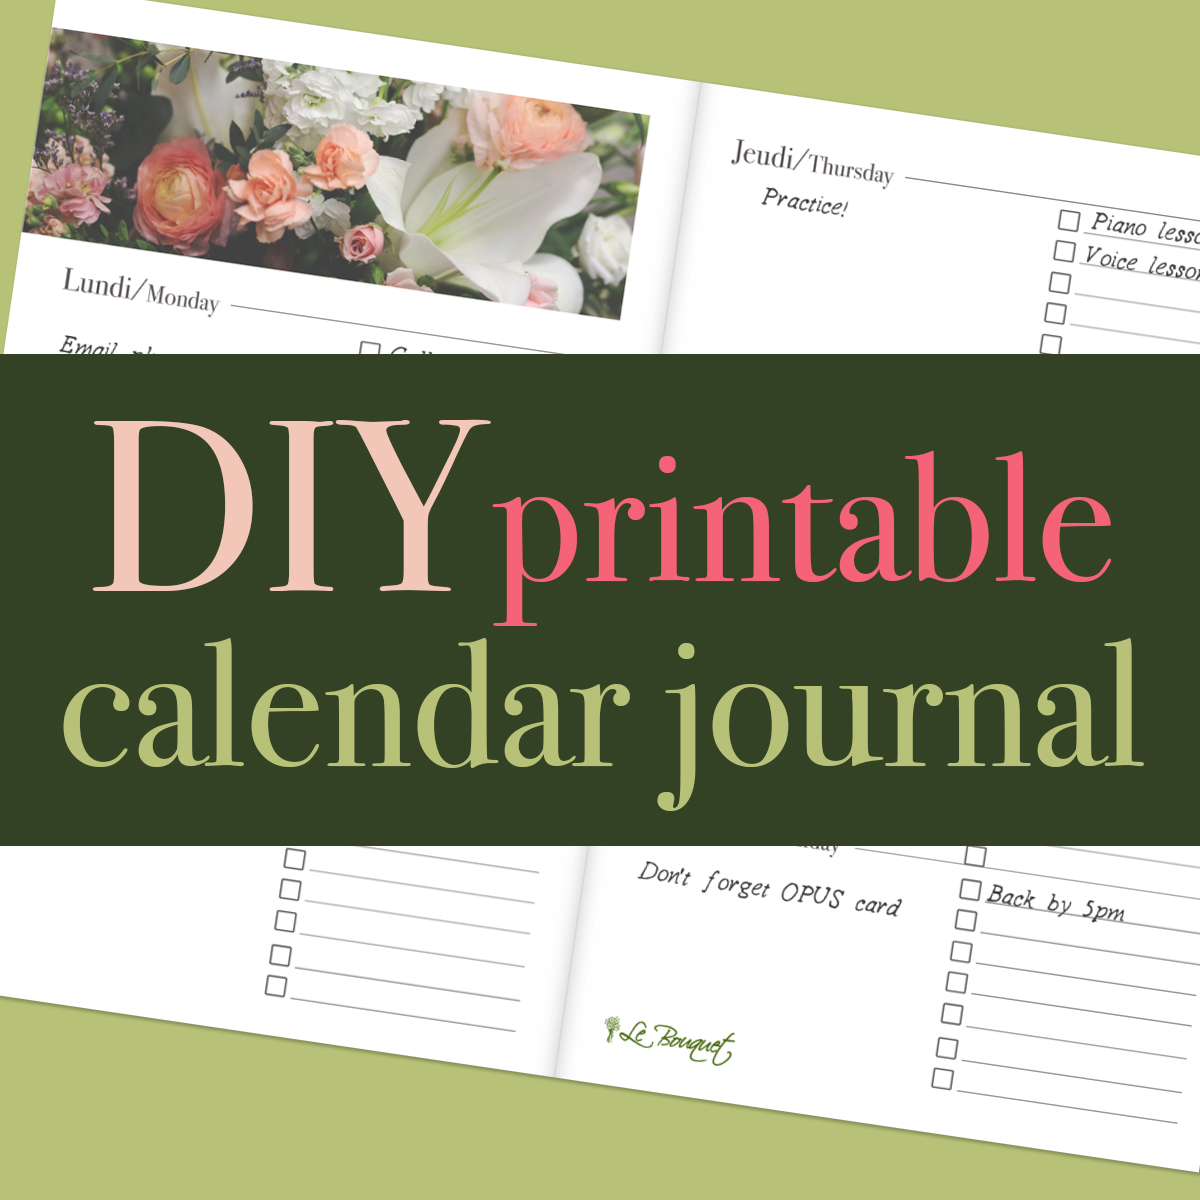 downloadable free calendar journal printable with flower theme - Calendrier-journal floral à imprimer par Le Bouquet